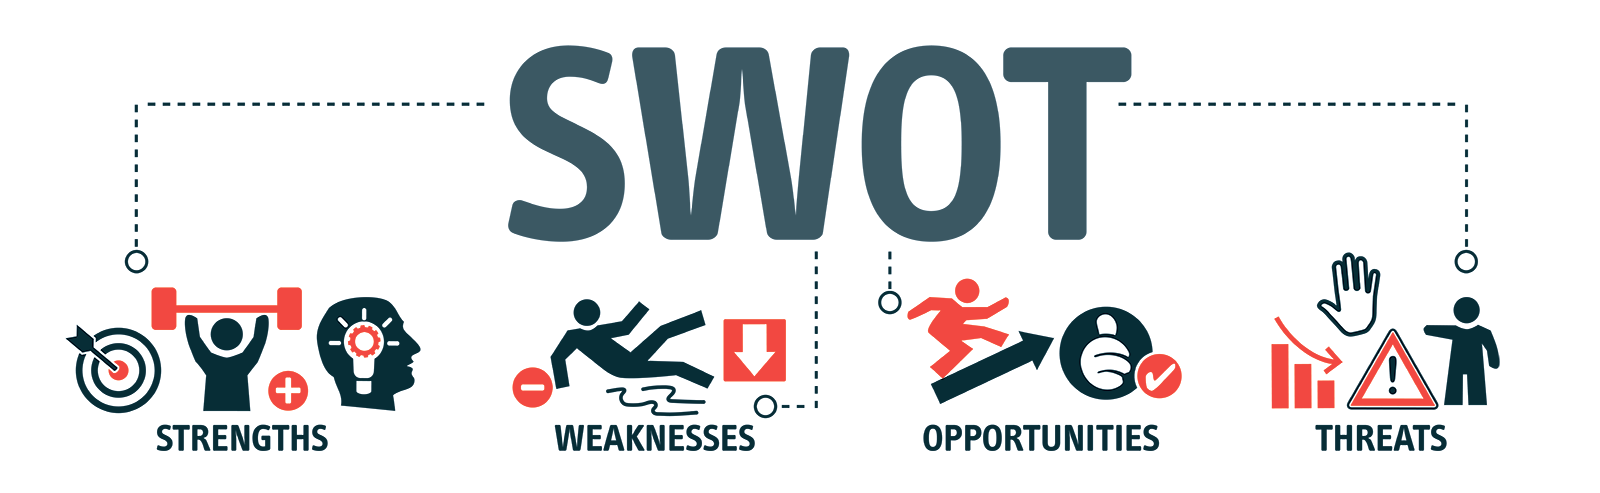 What are SWOT analysis